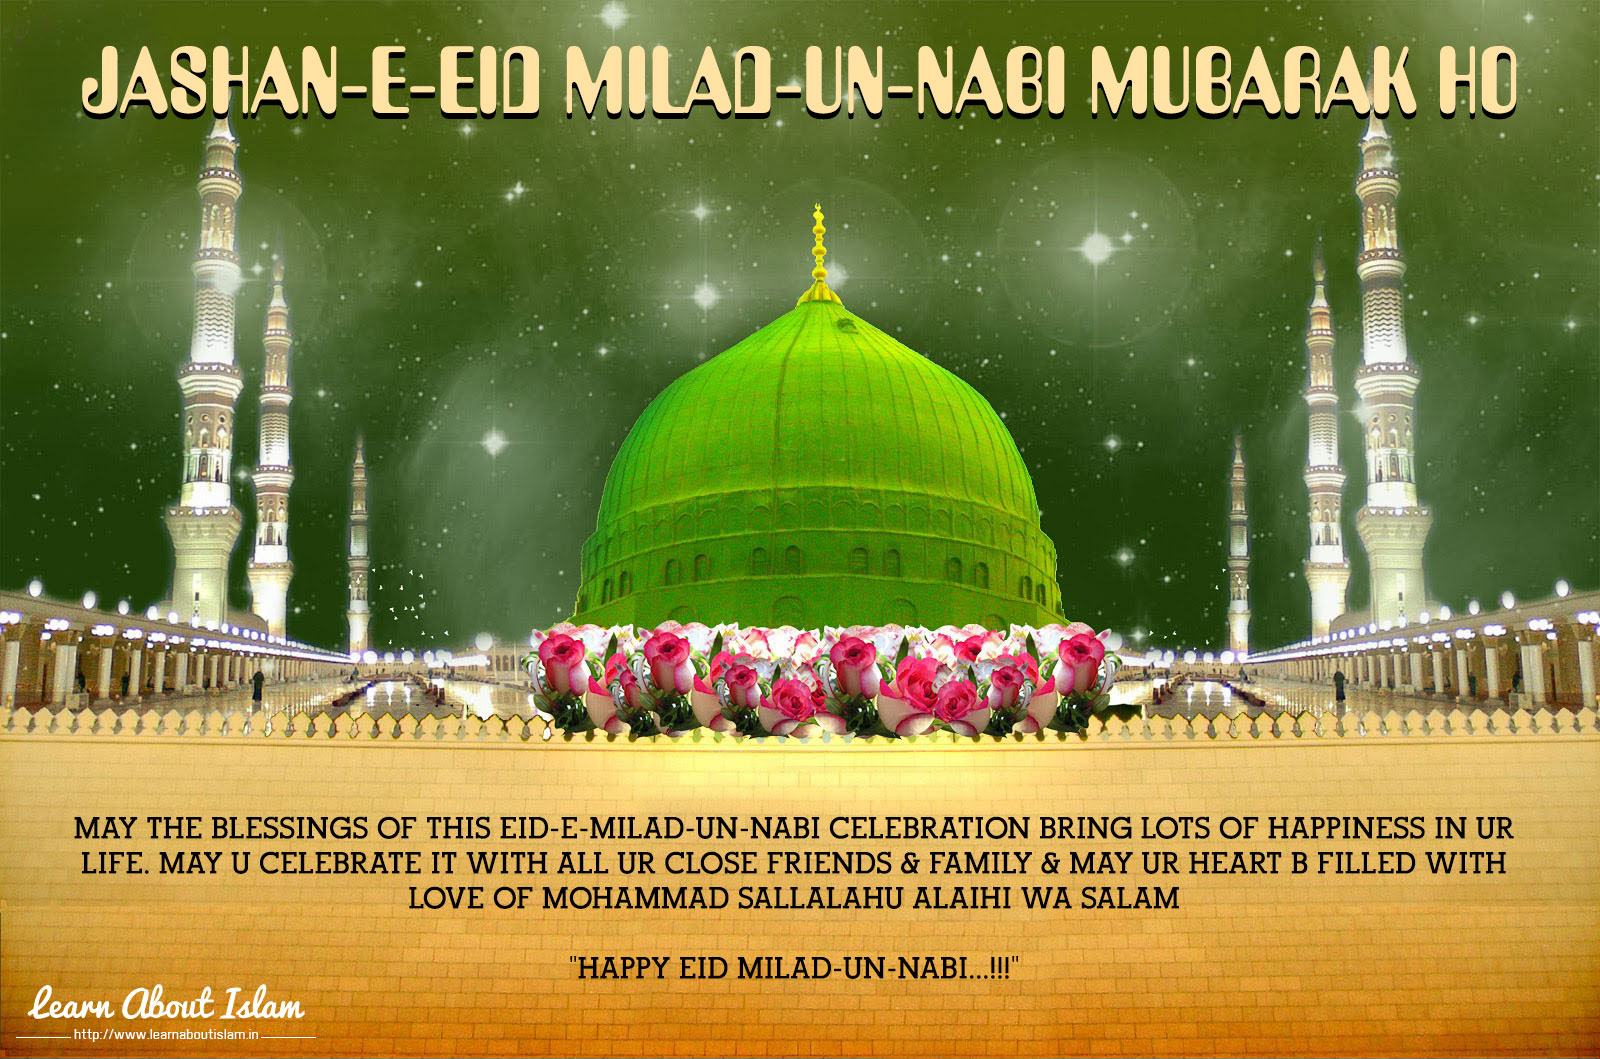 Fantastic Milad Eid Al-Fitr Greeting - JASHAN-E-EID-MILAD-UN-NABI-Greetings-Card  2018_722496 .jpg